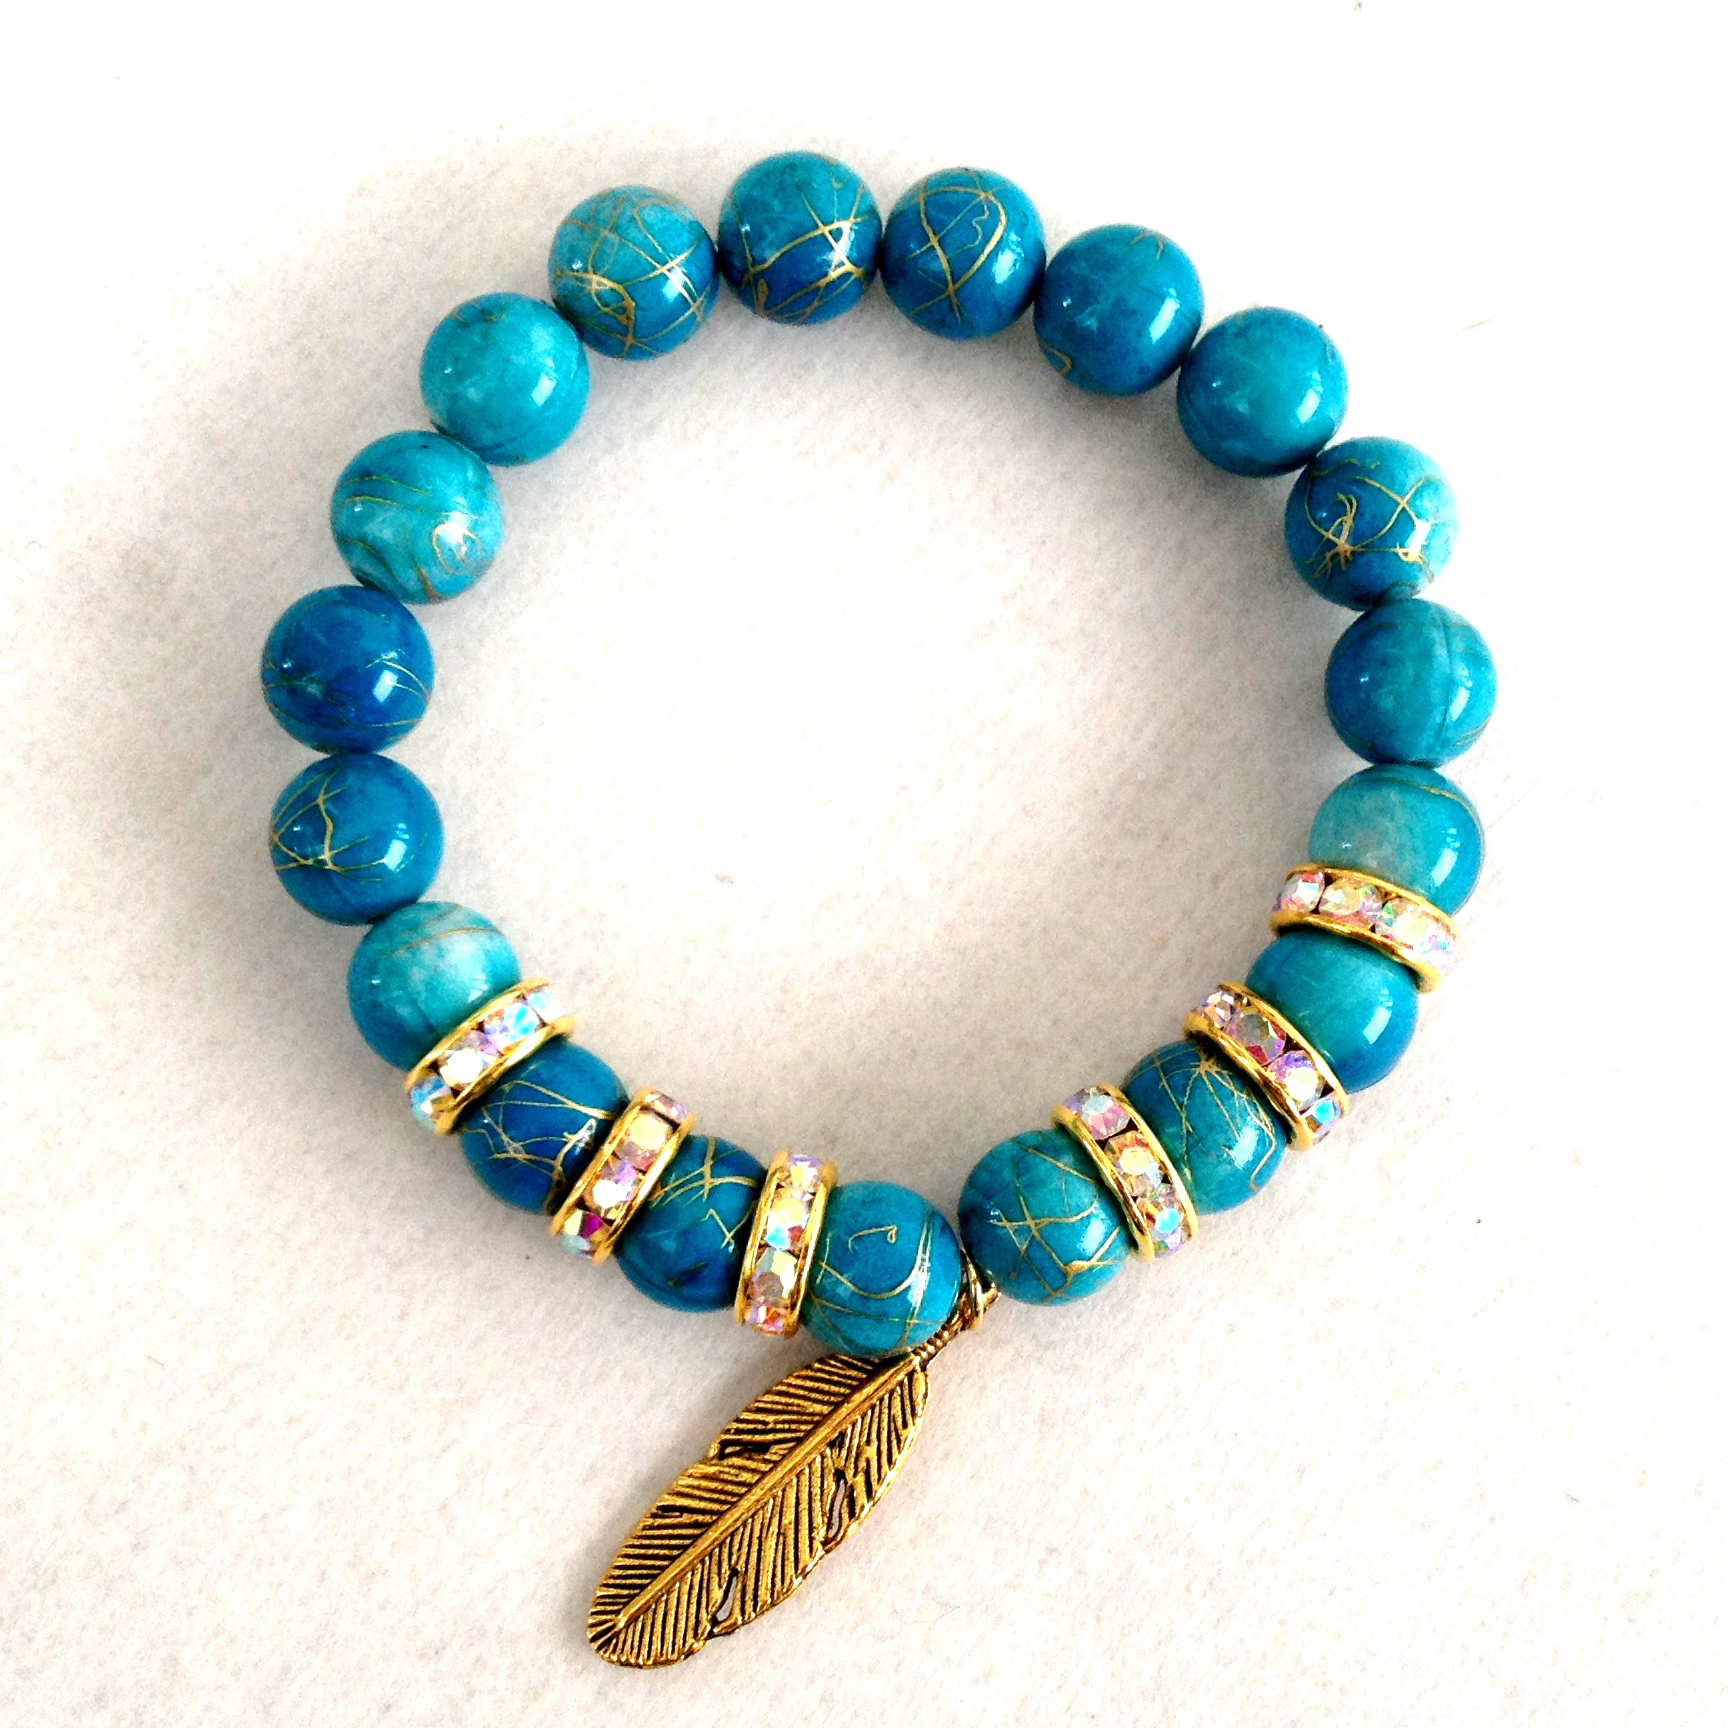 Image Result For How To Tell Real Turquoise